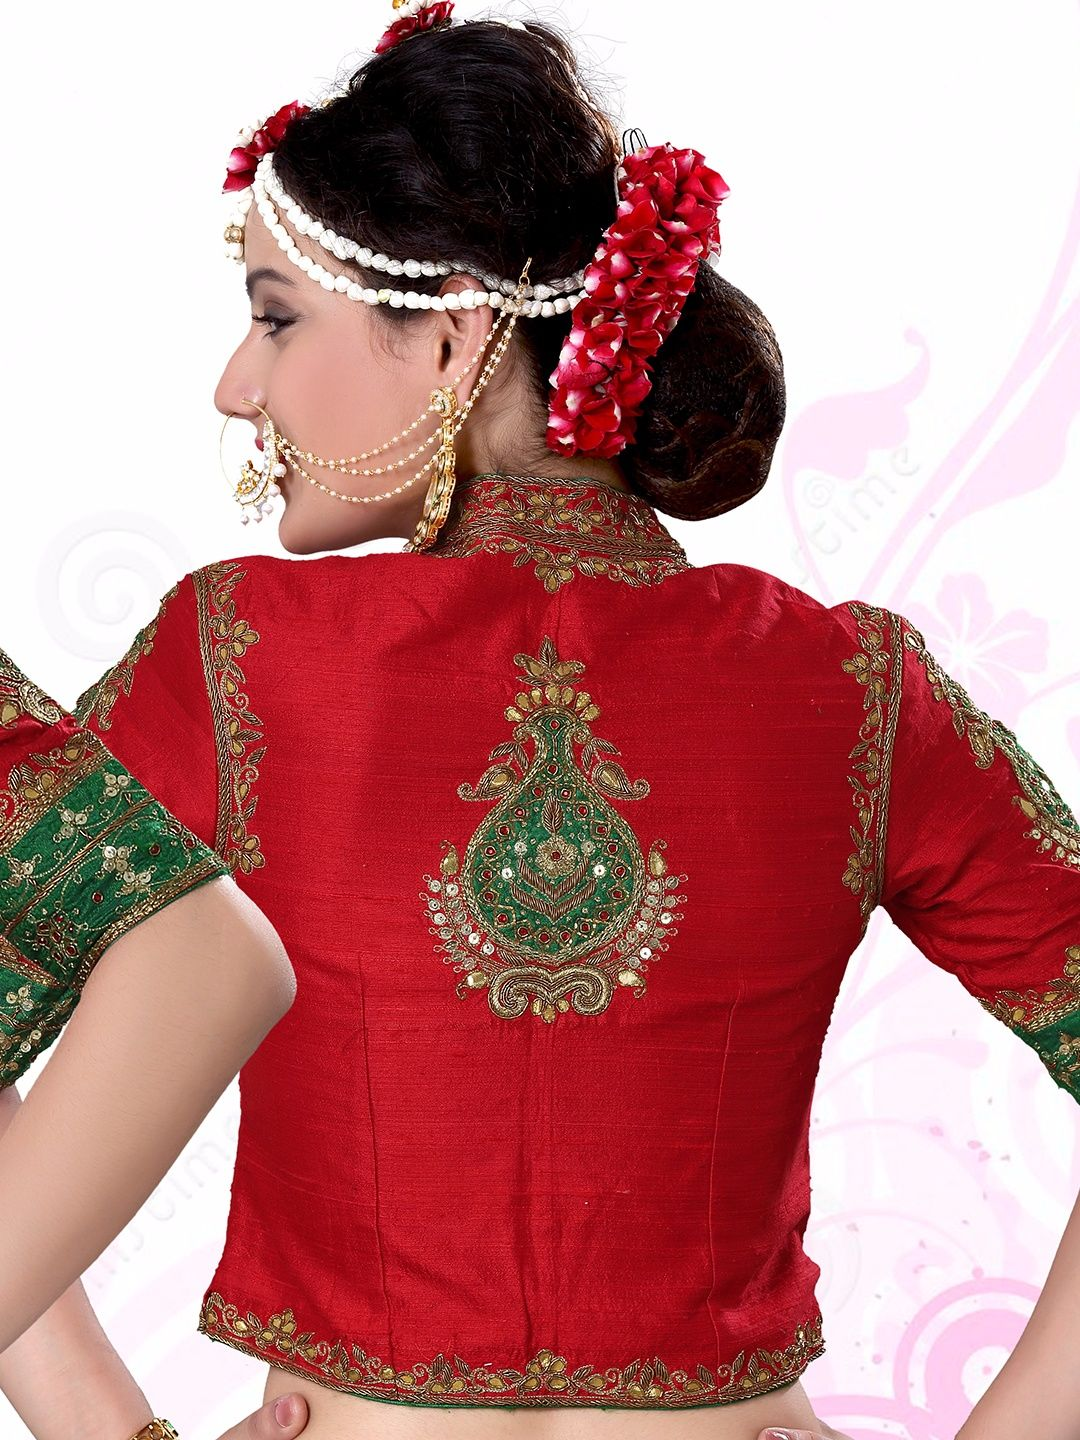 7c8a68a4f49877 Shop Red raw silk nice designer ready made blouse online from G3fashion  India. Brand - G3, Product code - G3-RB0397, Price - 8195, Color - Red, ...